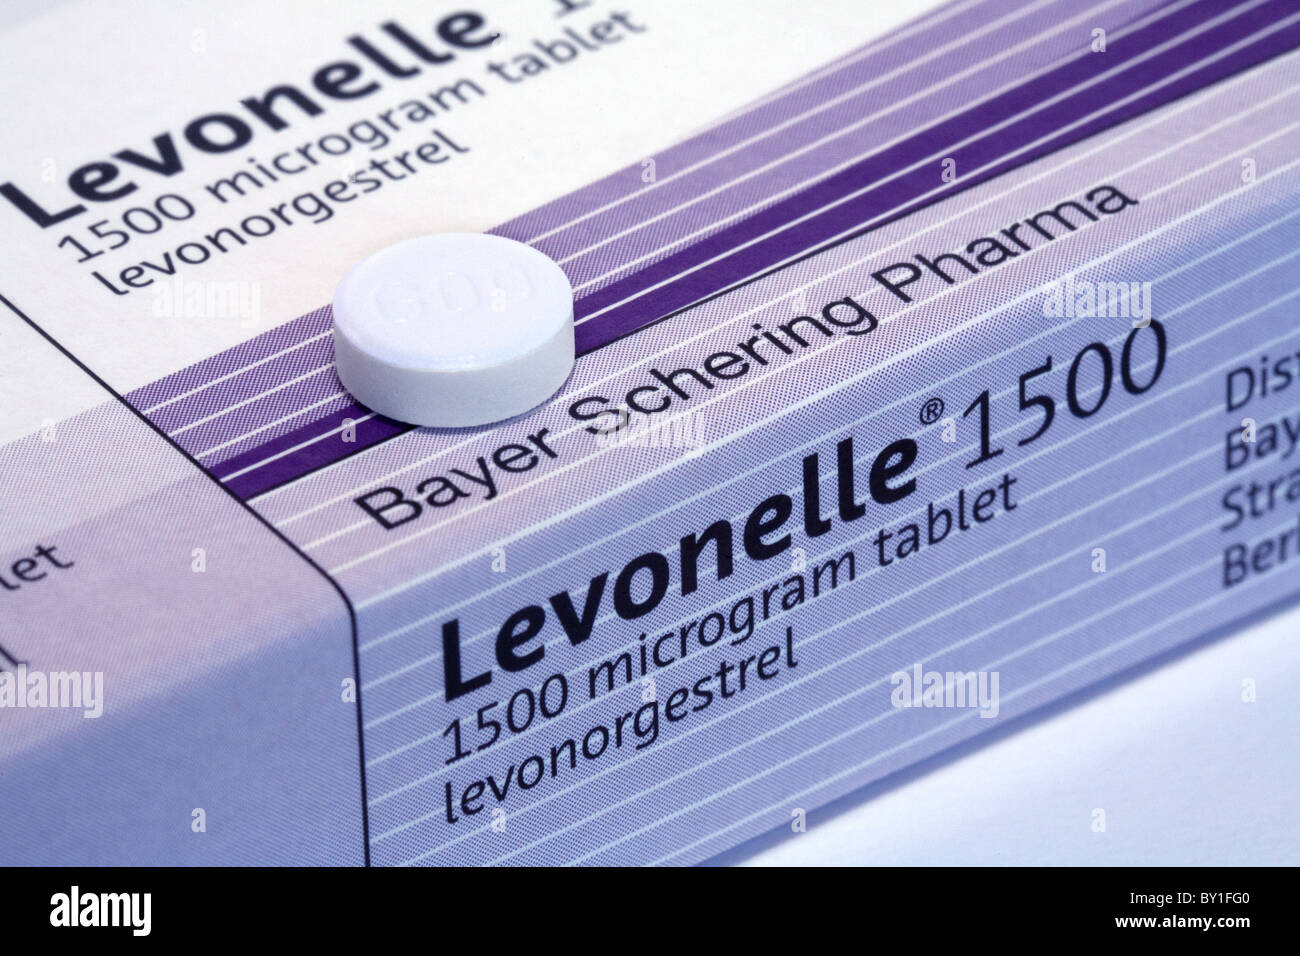 Levonelle Morning after pill for postcoital female contraception, UK made by Bayer Pharmaceuticals - Stock Image